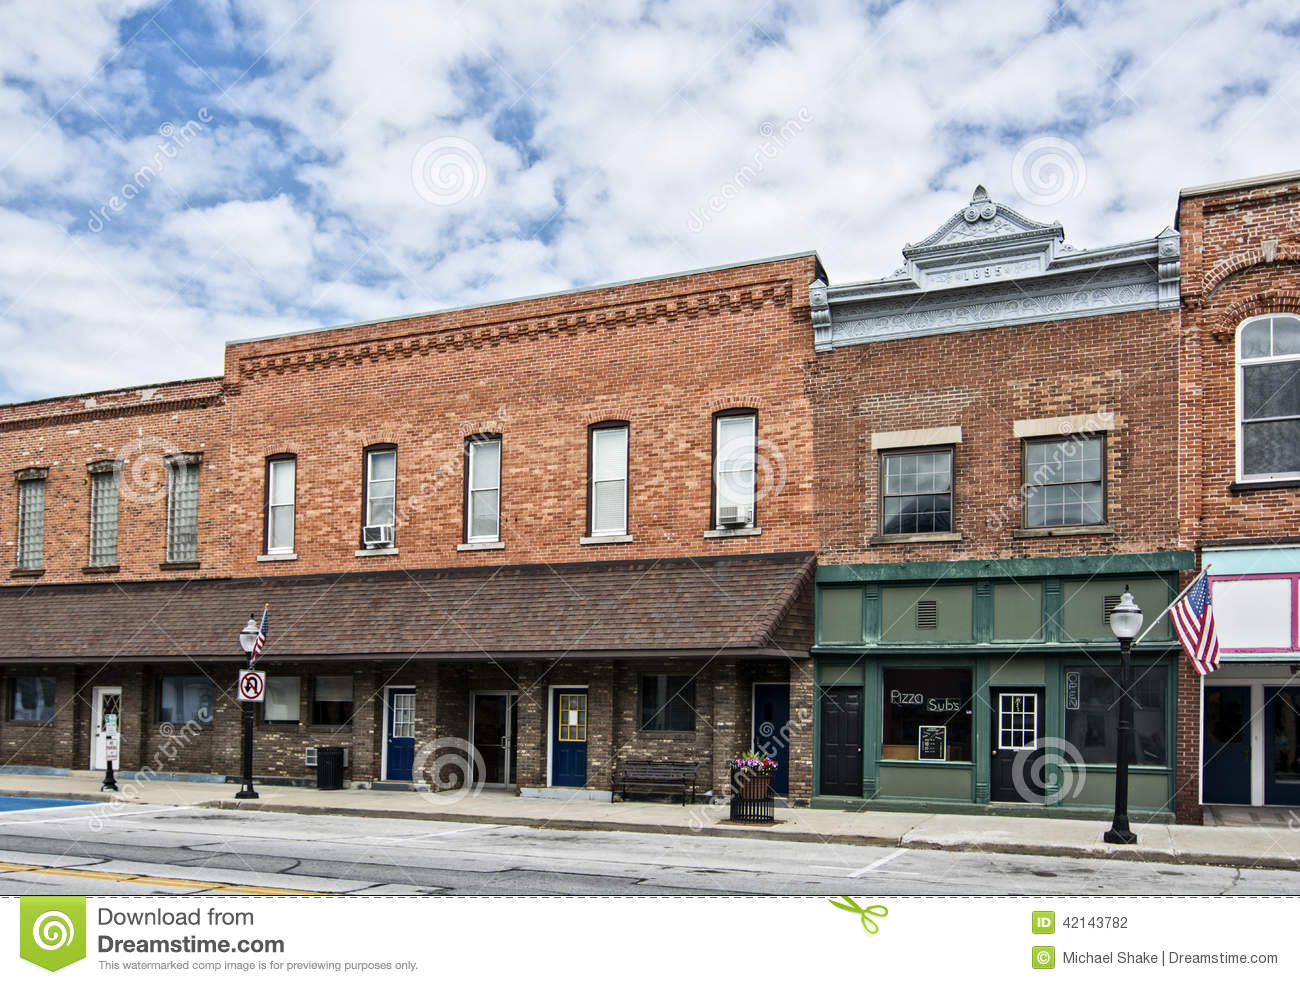 map of united states america with with Stock Photo Small Town Main Street Photo Typical United States America Features Old Brick Buildings Specialty Shops Image42143782 on  together with File Downtown irvine as well Carte also Carte in addition .